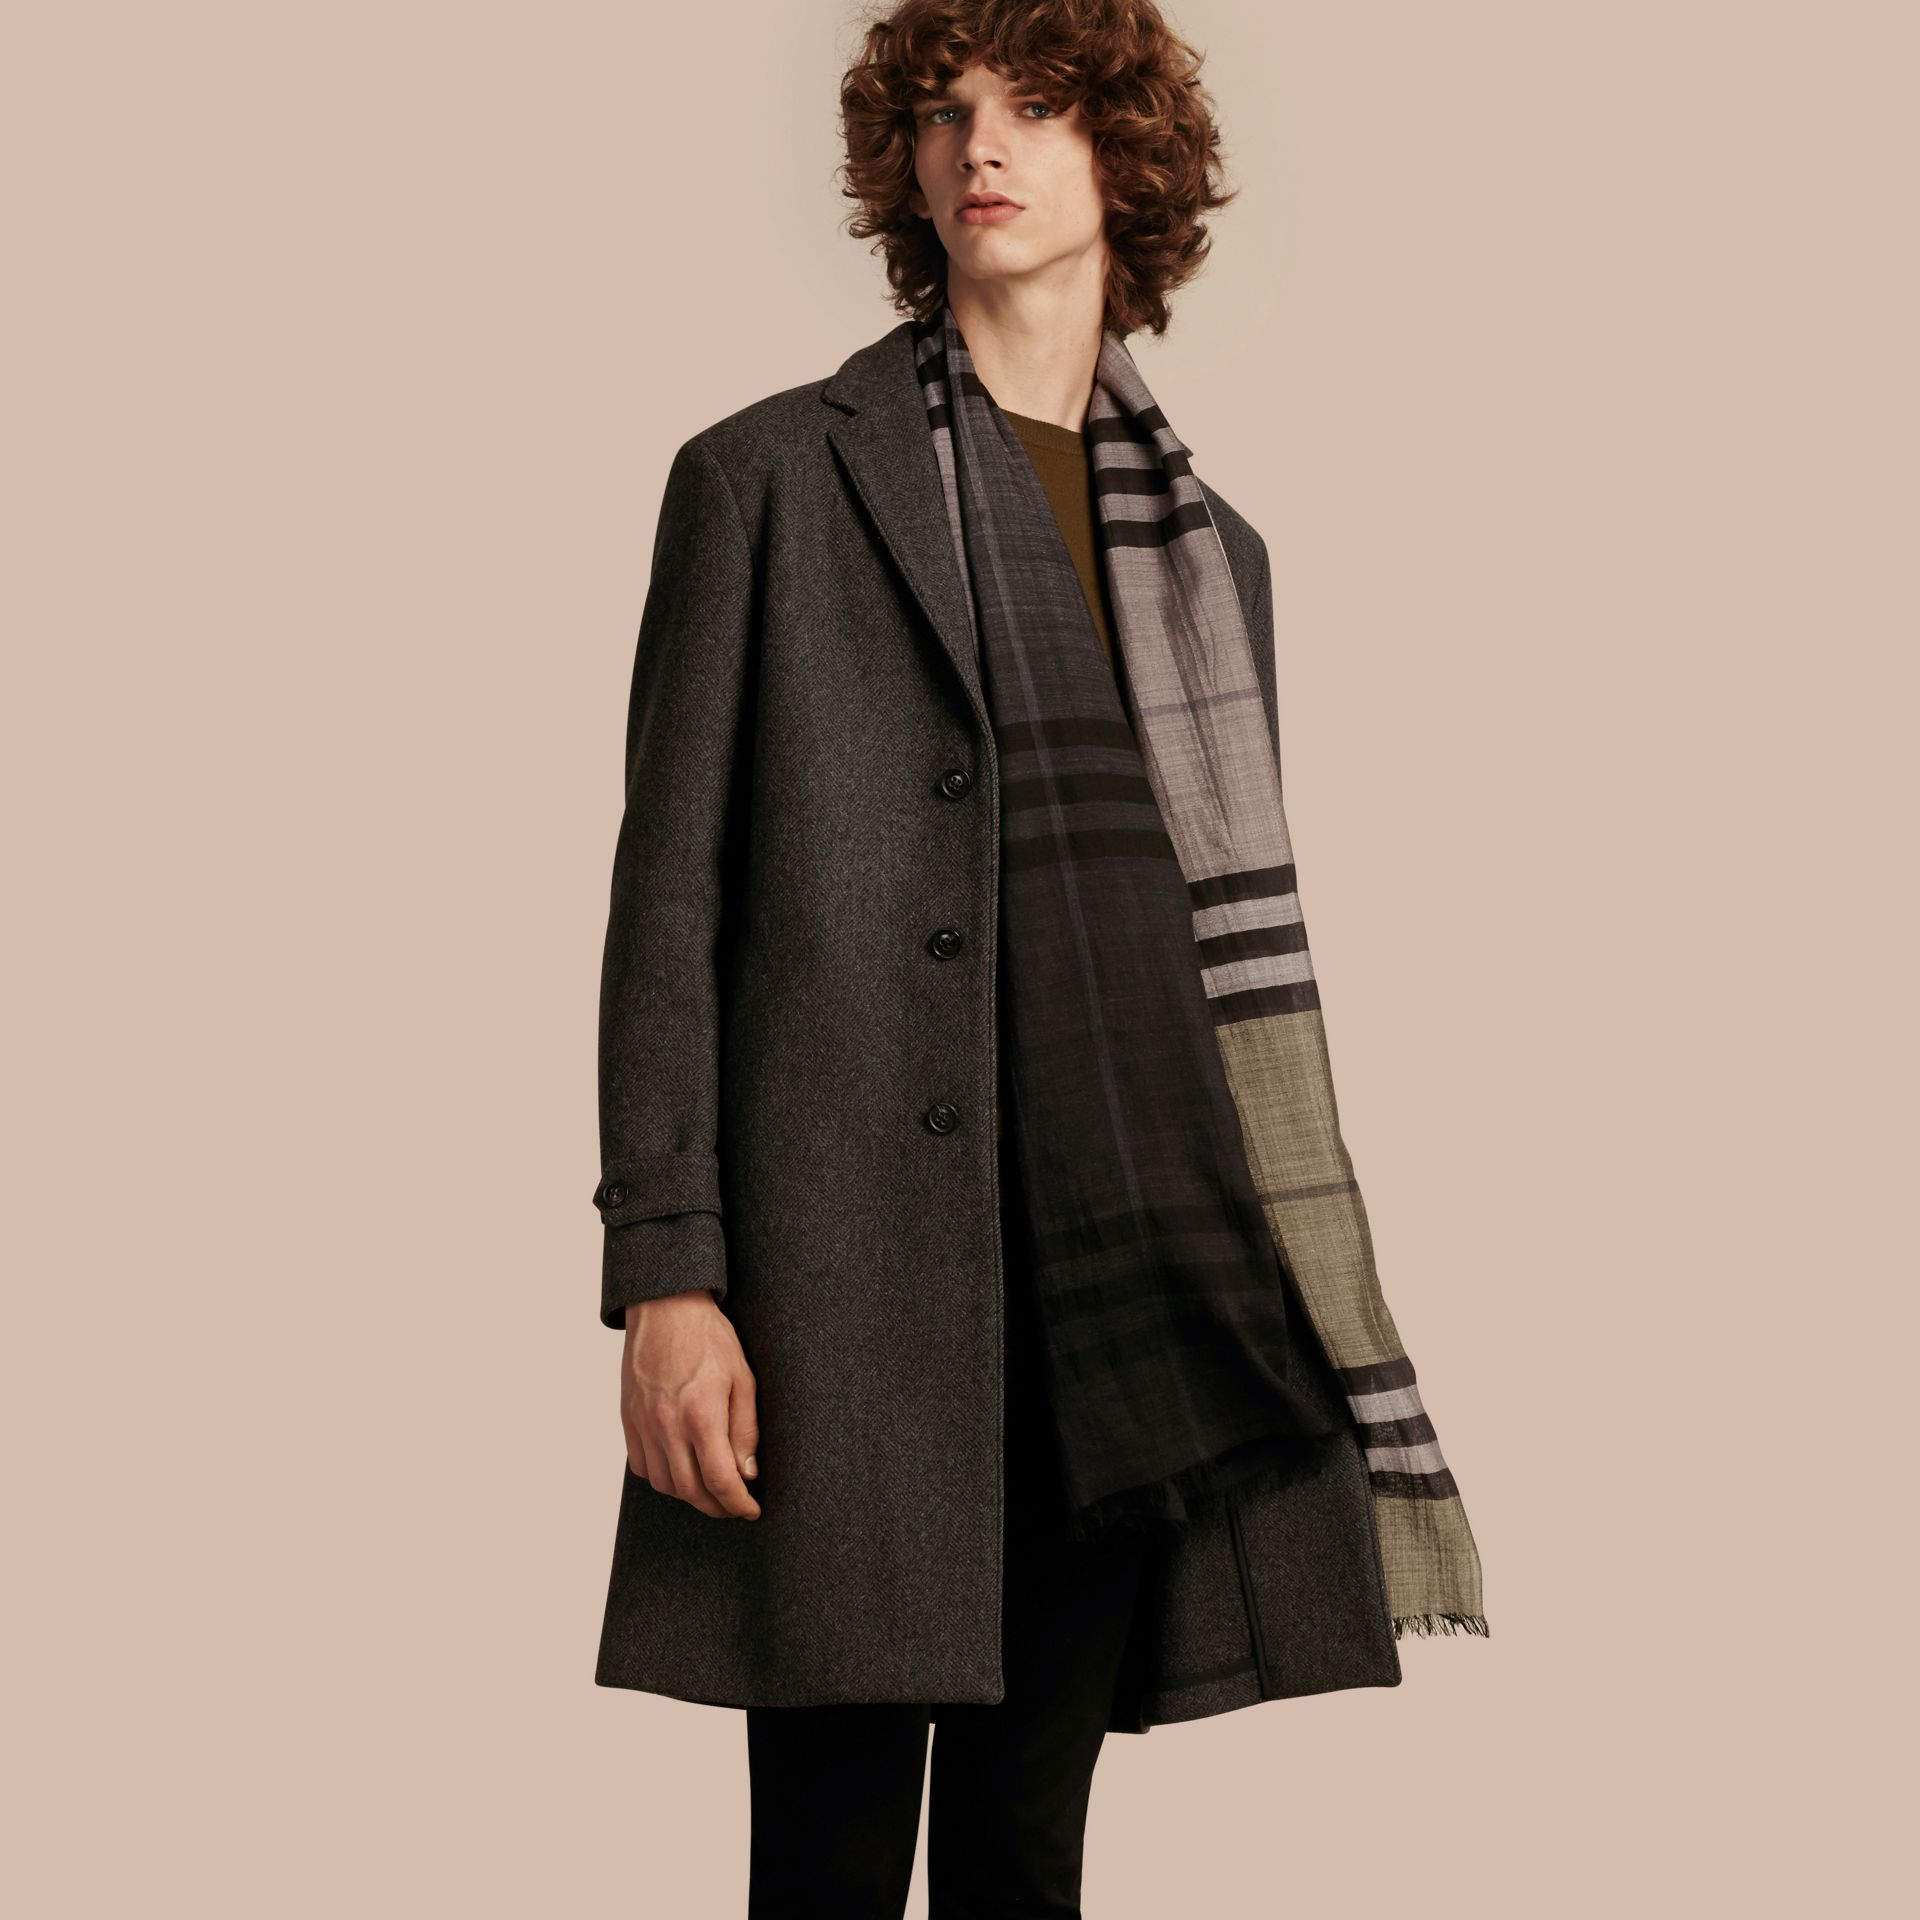 Charcoal melange Single-breasted Wool Blend Tailored Coat - gallery image 1